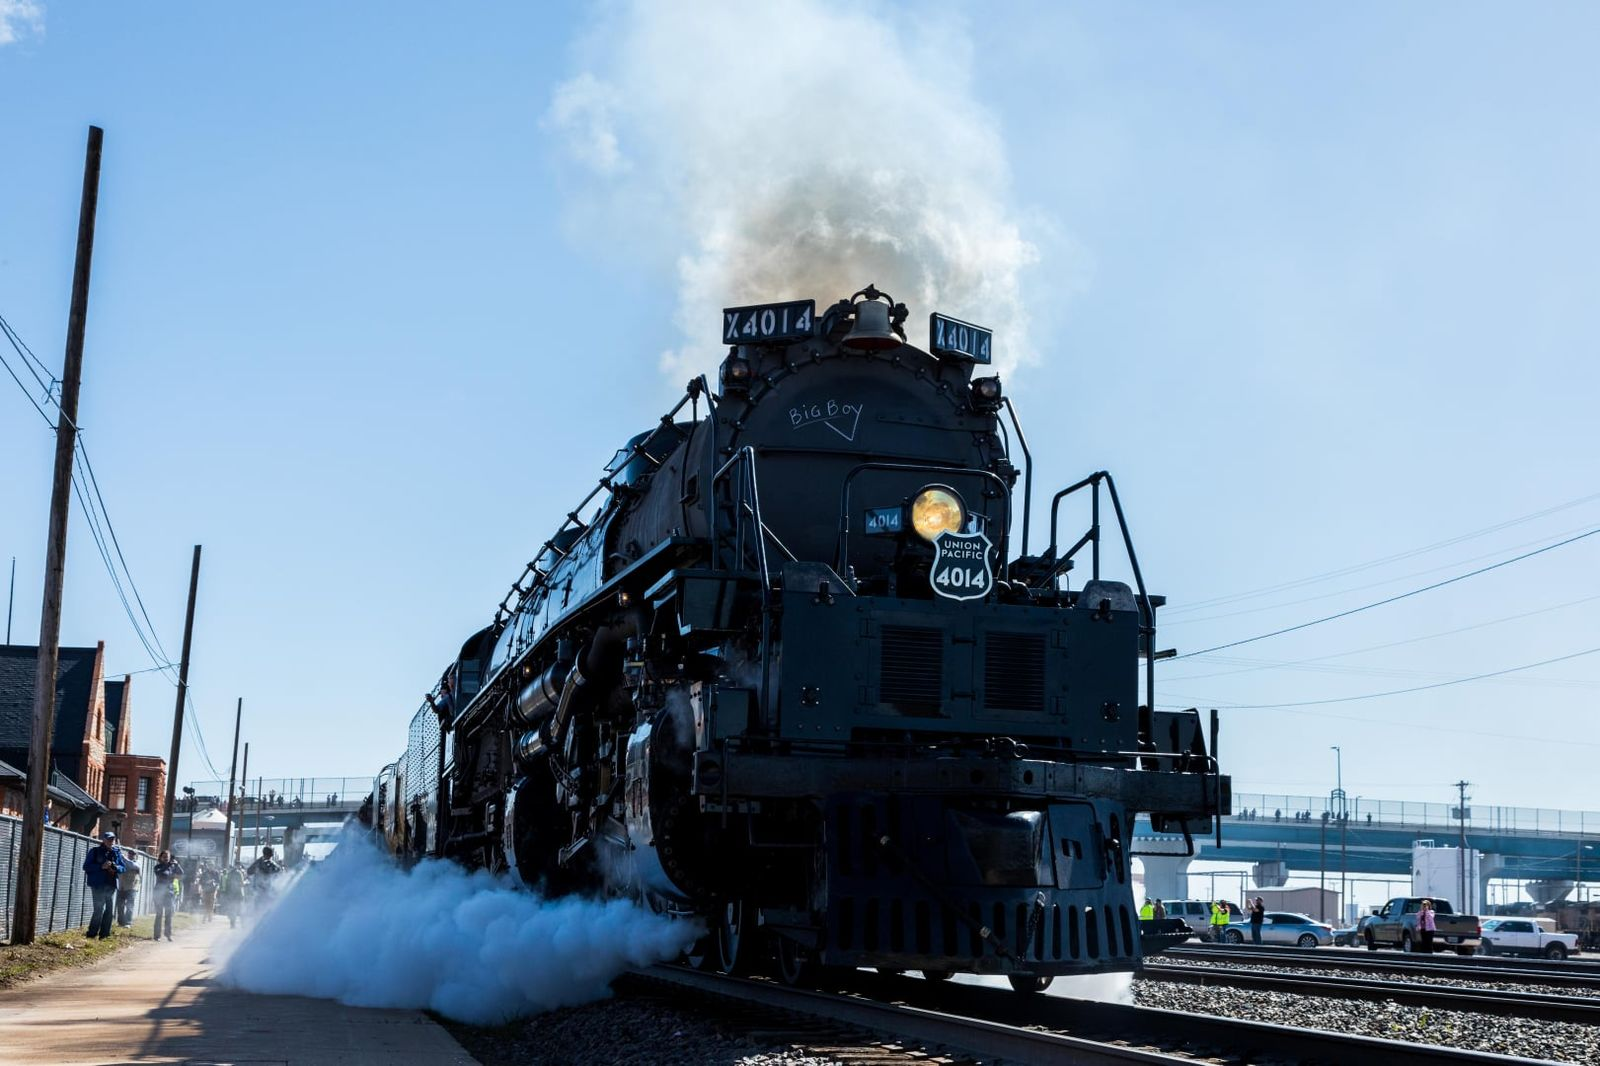 The world's largest steam locomotive, Big Boy No. 4014, is roaring its way into Oklahoma this weekend. (Courtesy of Union Pacific)